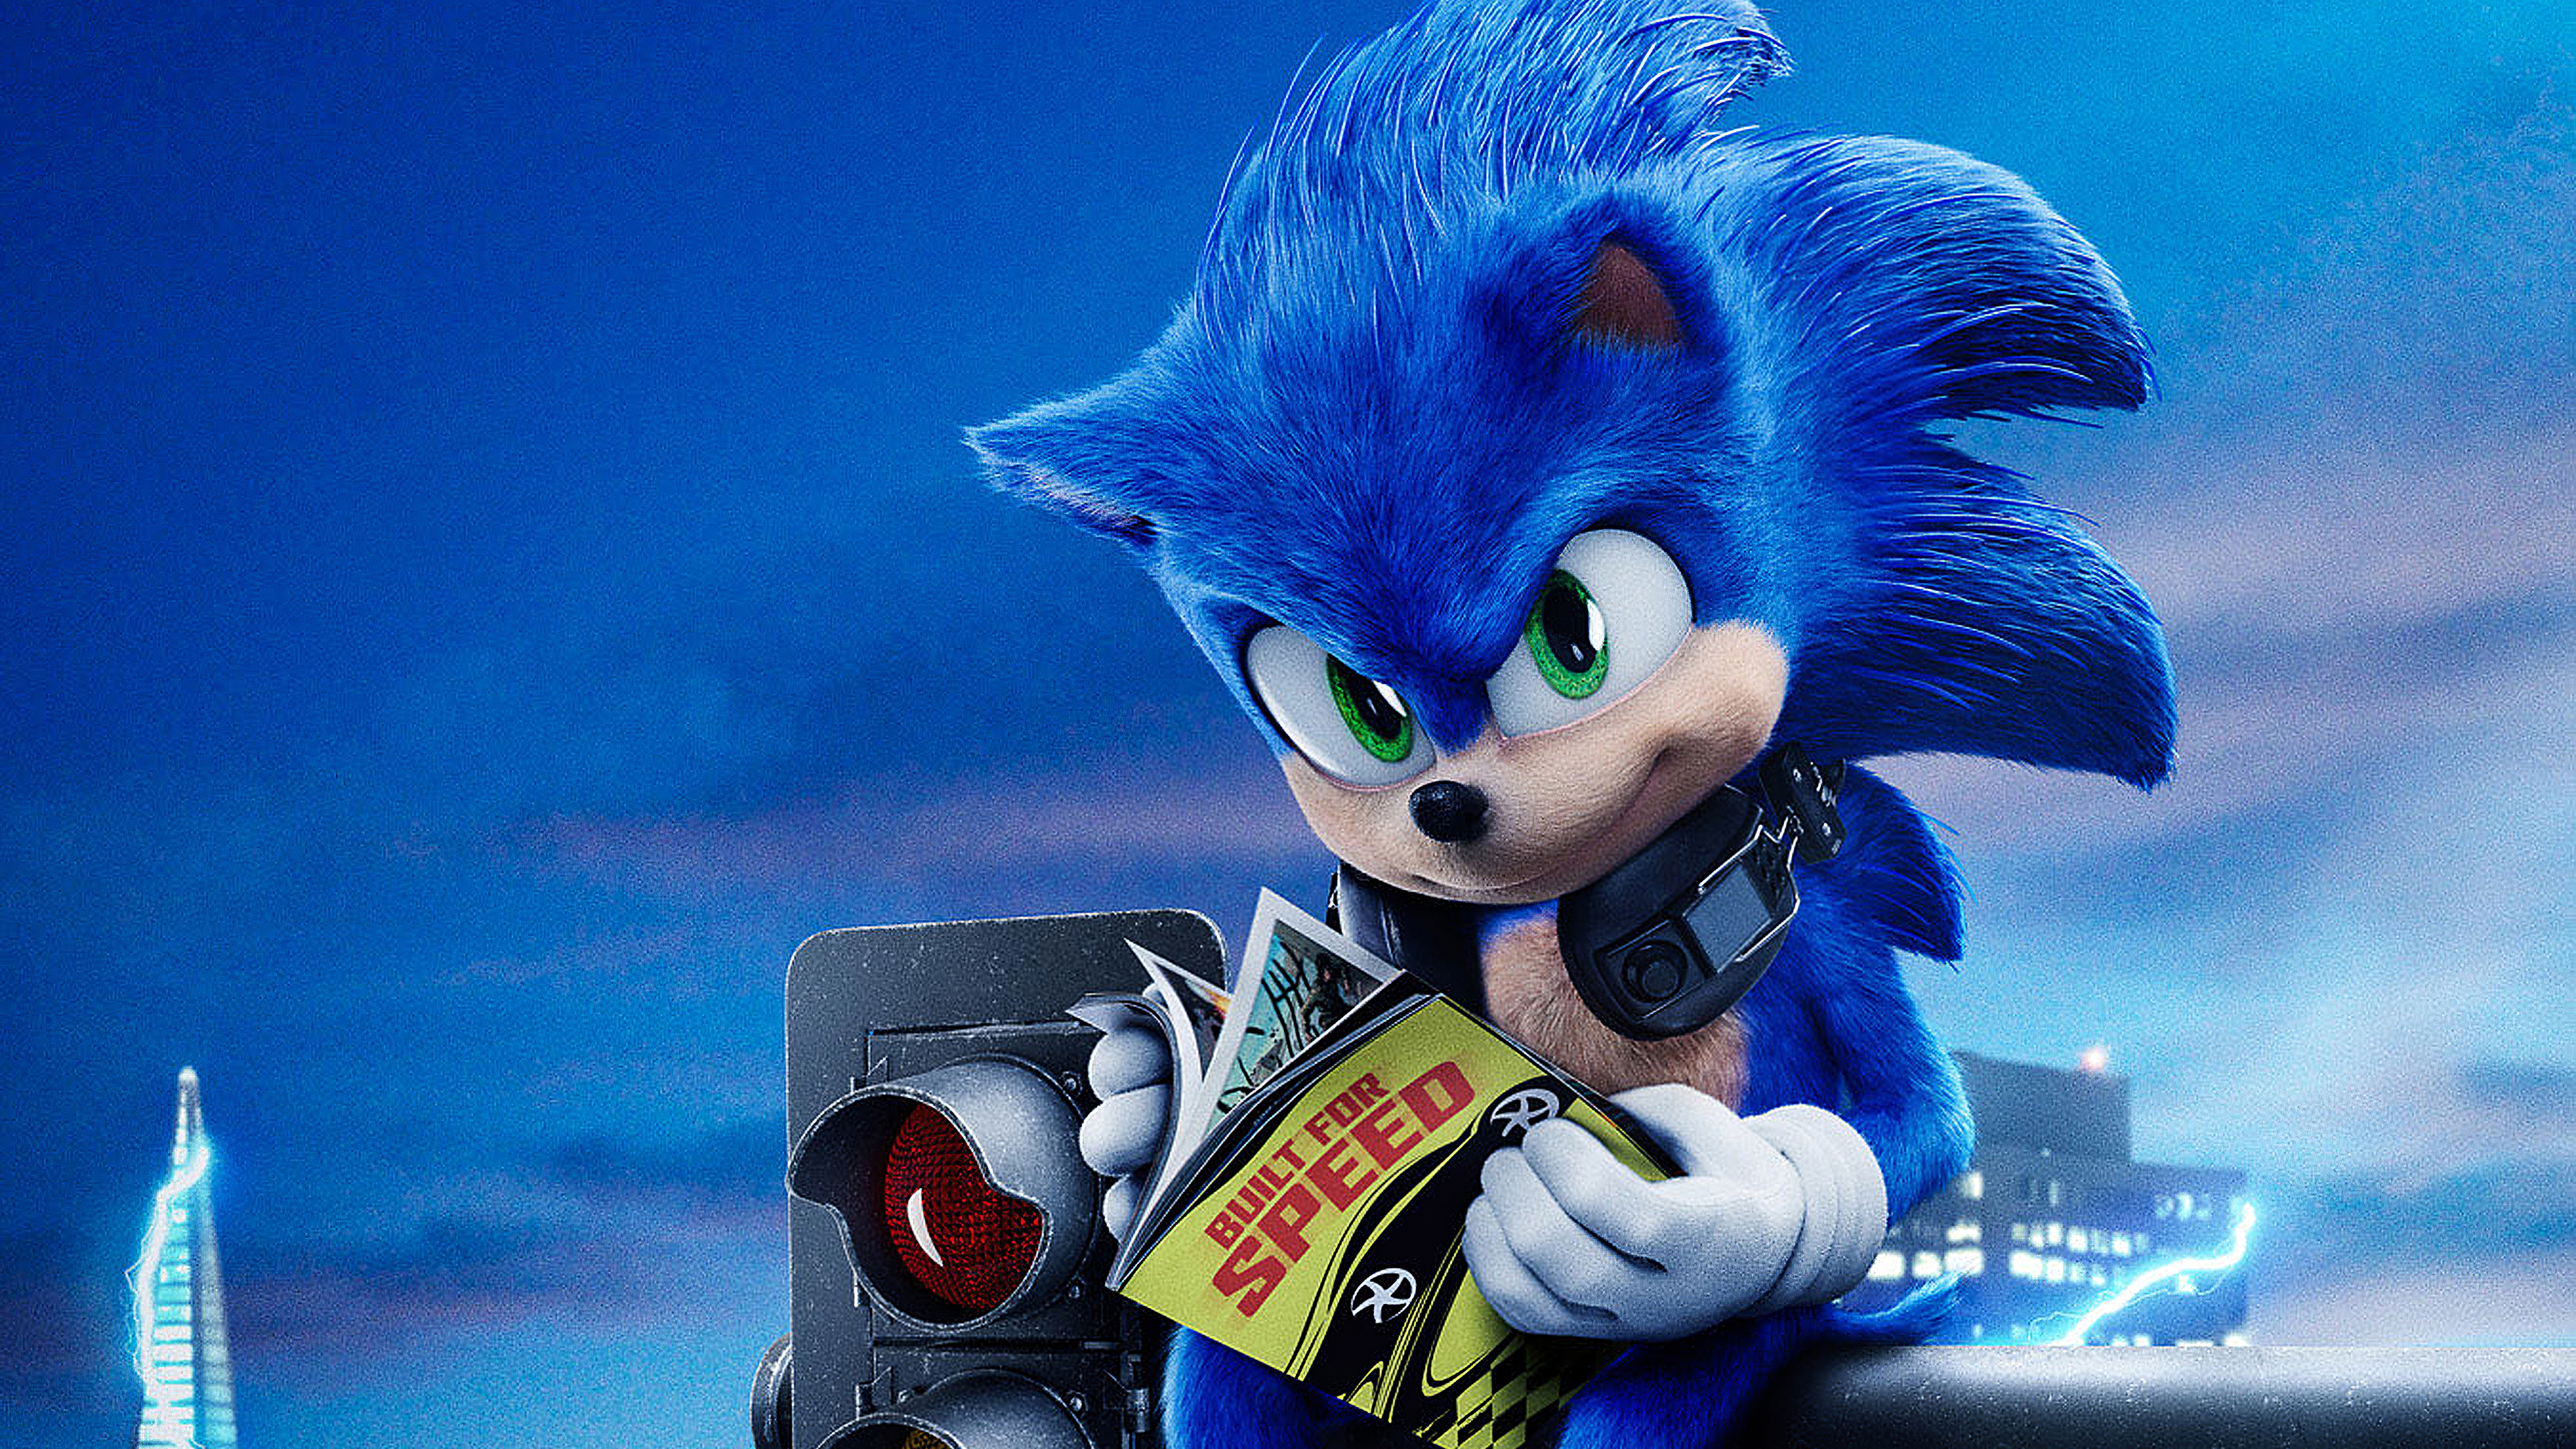 4k Sonic The Hedgehog 2020 Hd Movies 4k Wallpapers Images Backgrounds Photos And Pictures